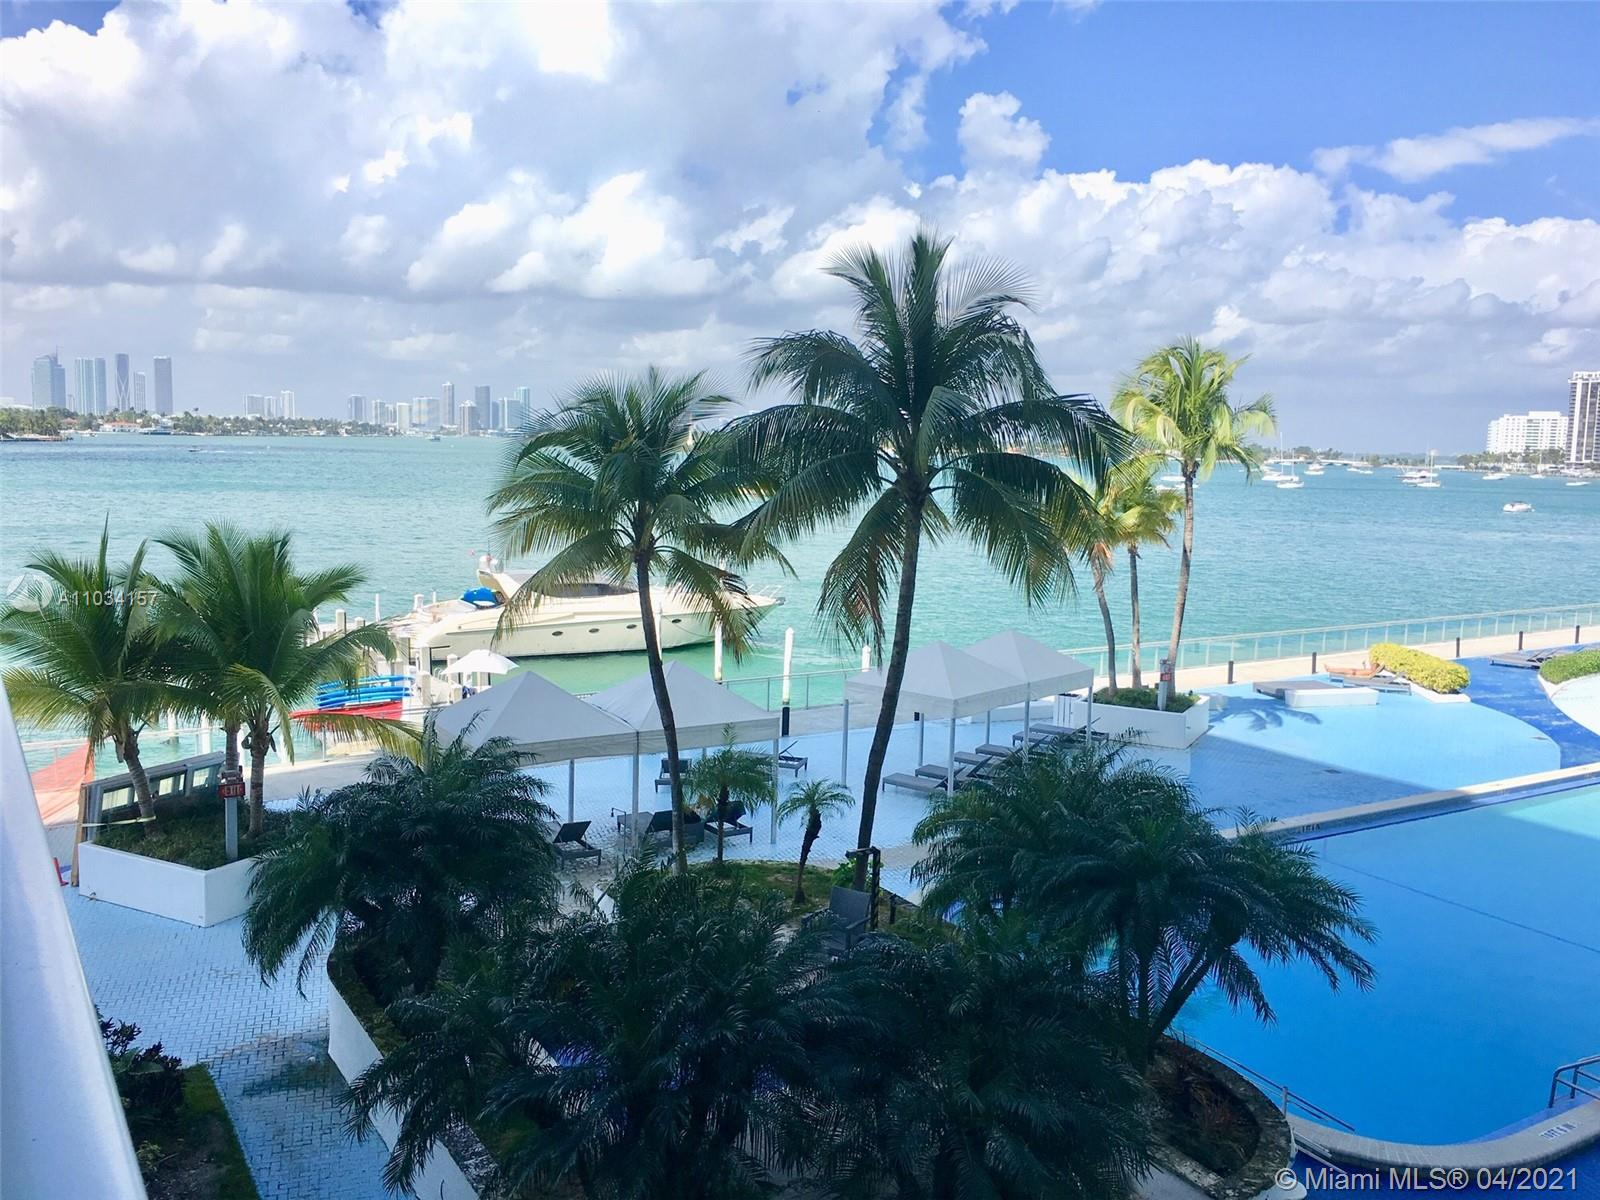 Mirador South #323 - 1000 WEST AV #323, Miami Beach, FL 33139